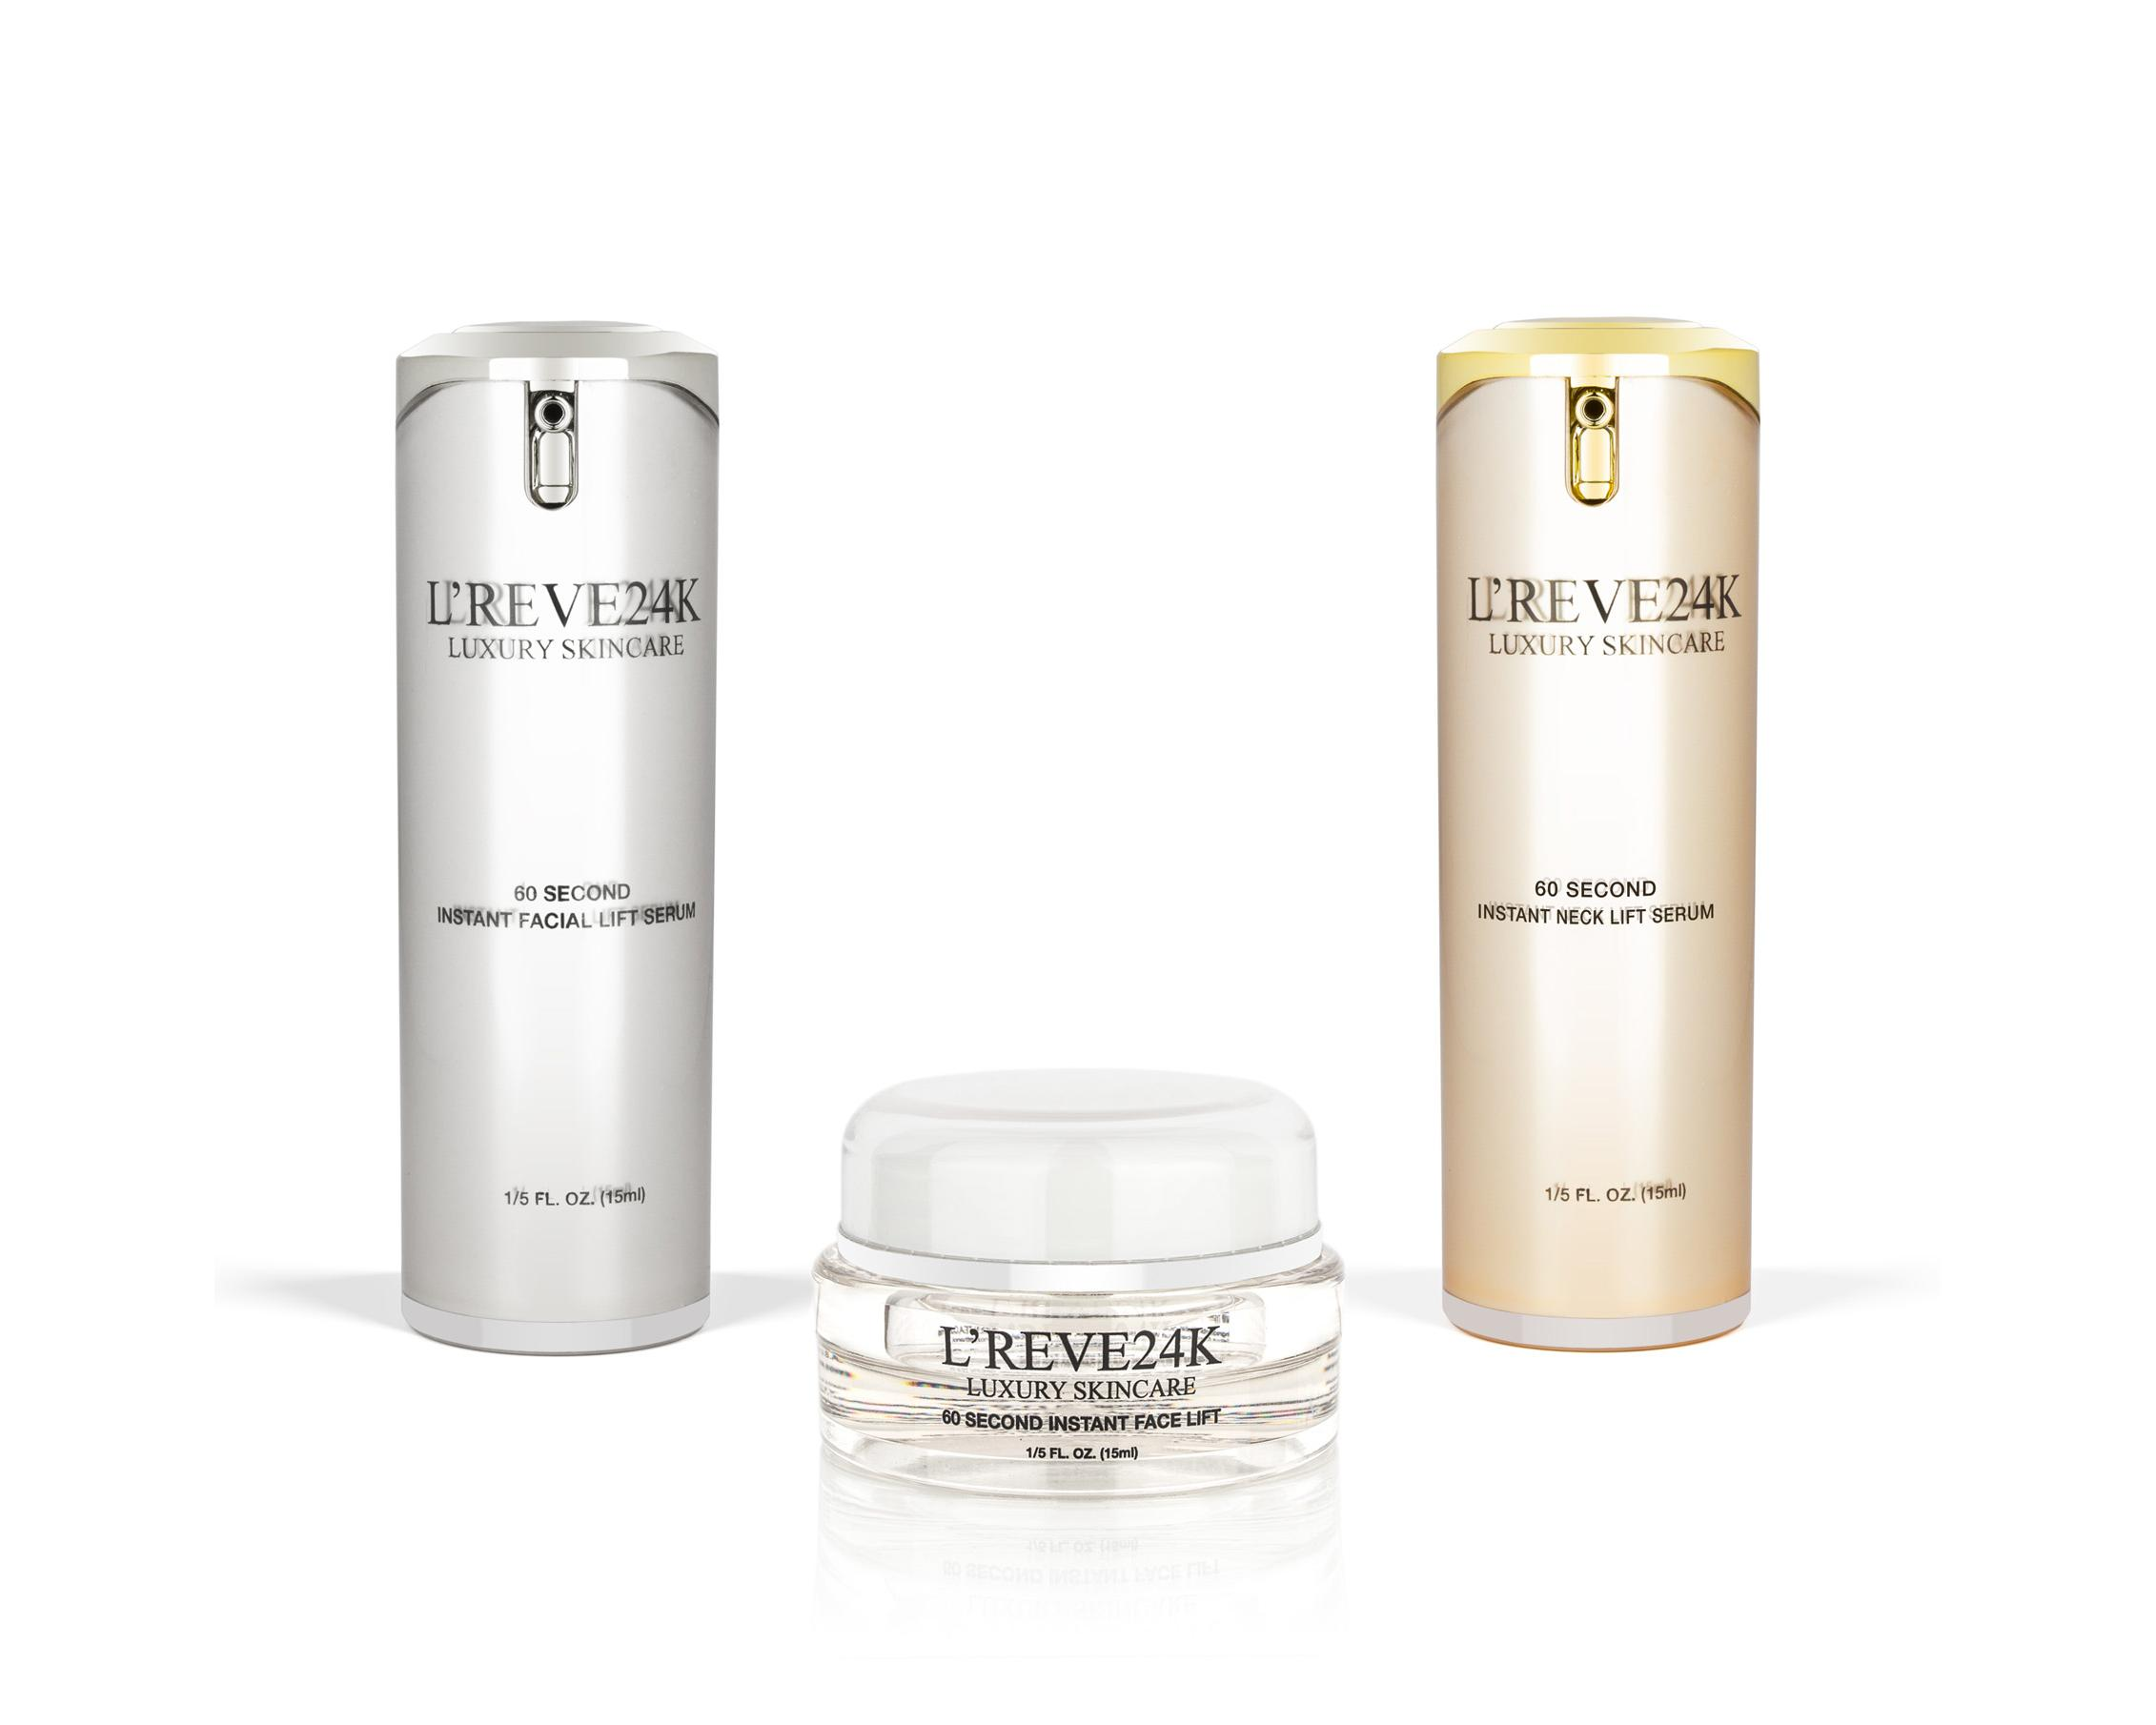 Lreve 60 Second Lift Set- 60 Second Instant Lifting Serum, Neck Lift Serum, & Cream 5 Pack EOS Visibly Soft Lip Balm Sphere Vanilla Mint 0.25oz Each